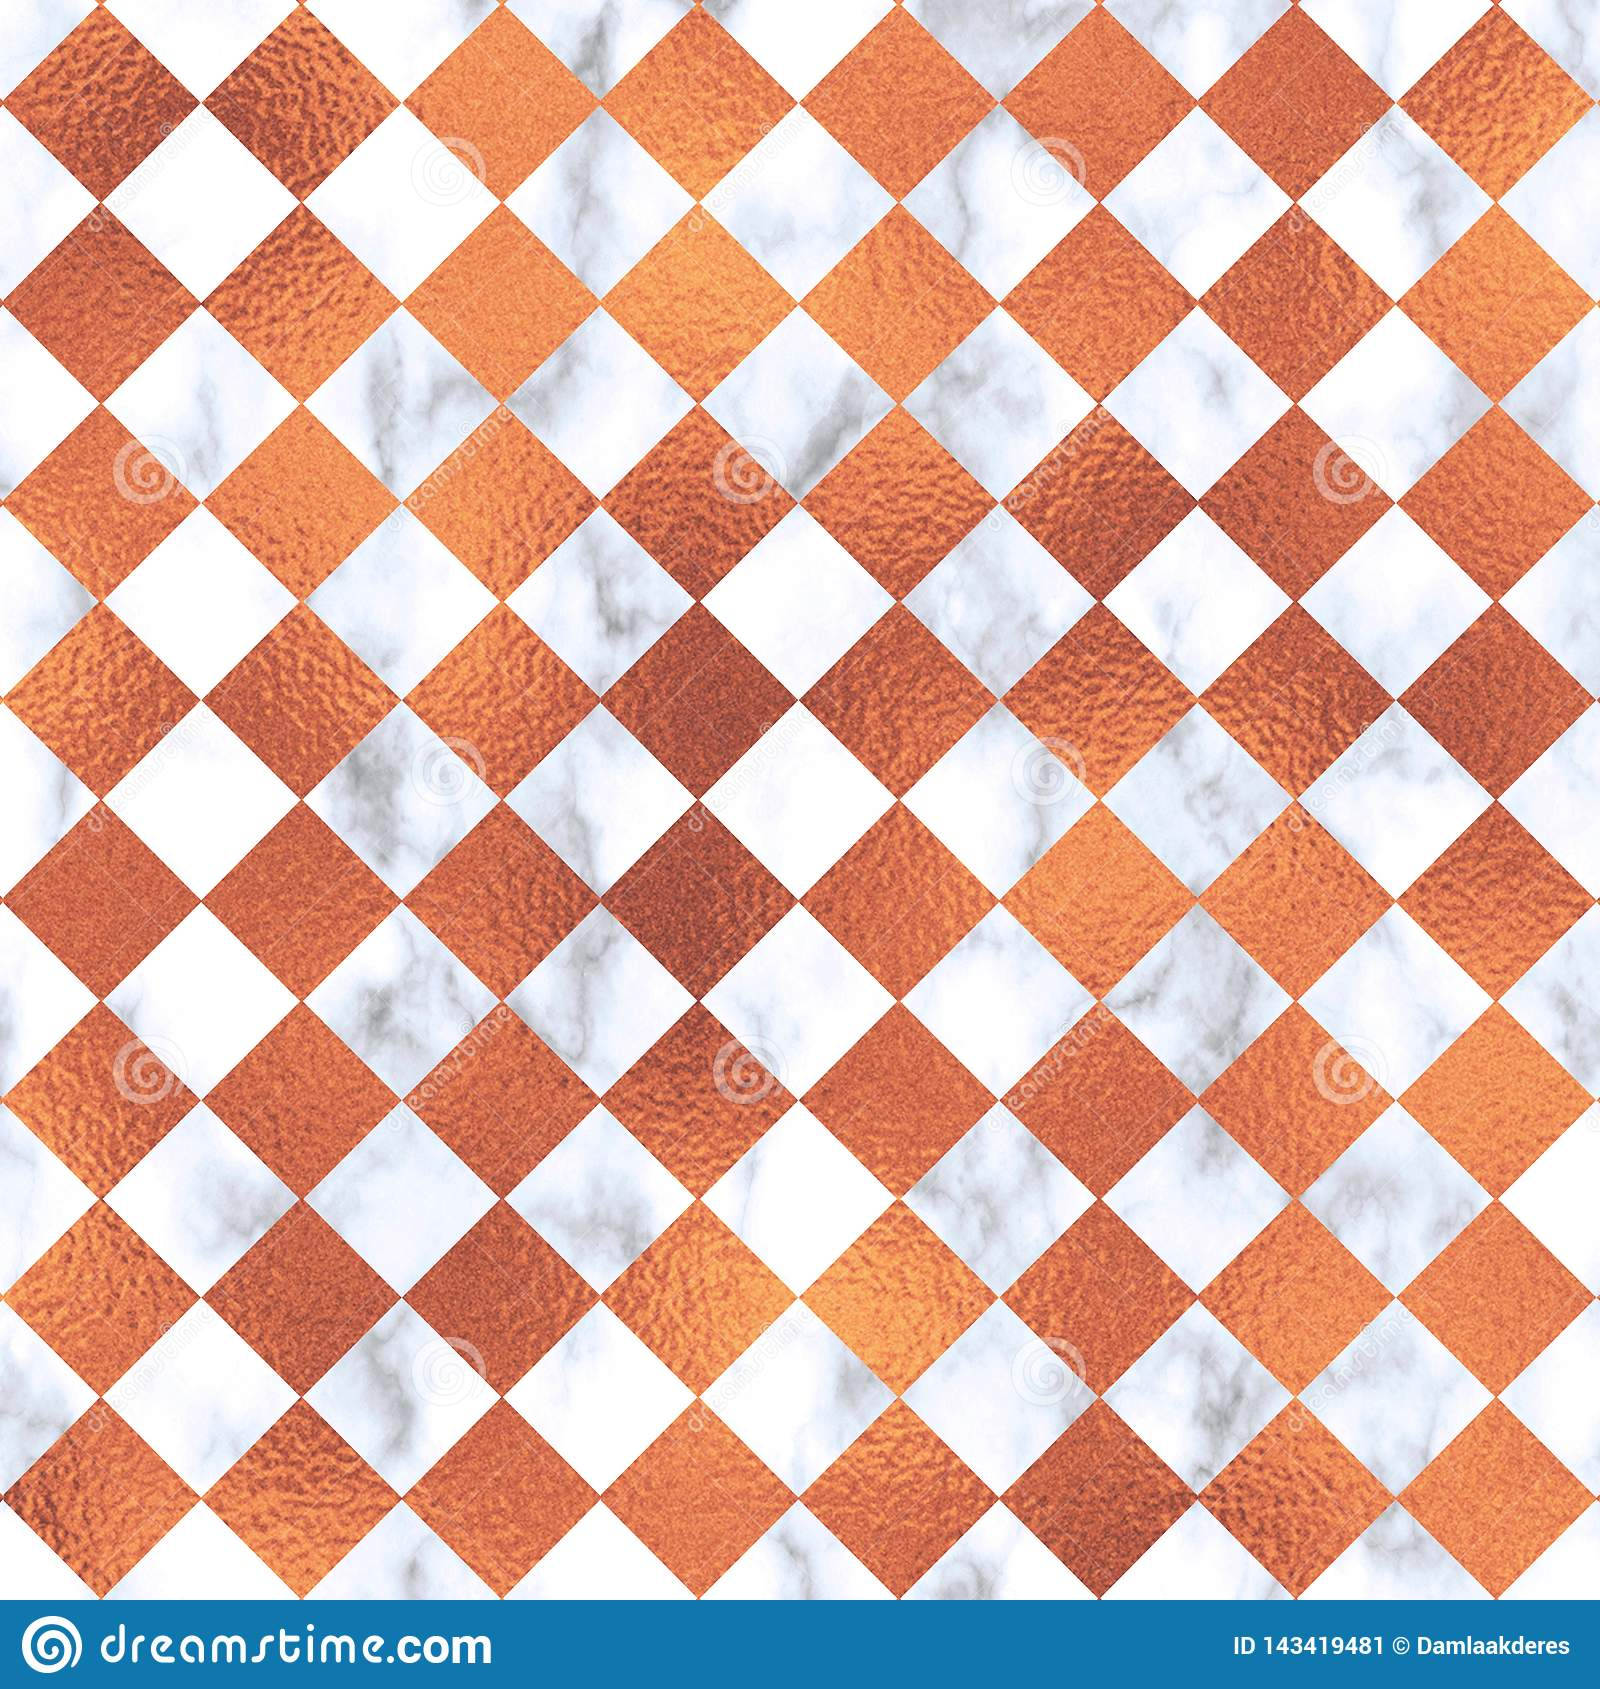 Rose Gold Geometric Pattern On Marble Background Rose Gold Texture Rose Gold Geometric Marble Pattern Rose Gold Marble Wallpaper Stock Illustration Illustration Of Pattern Geometric 143419481